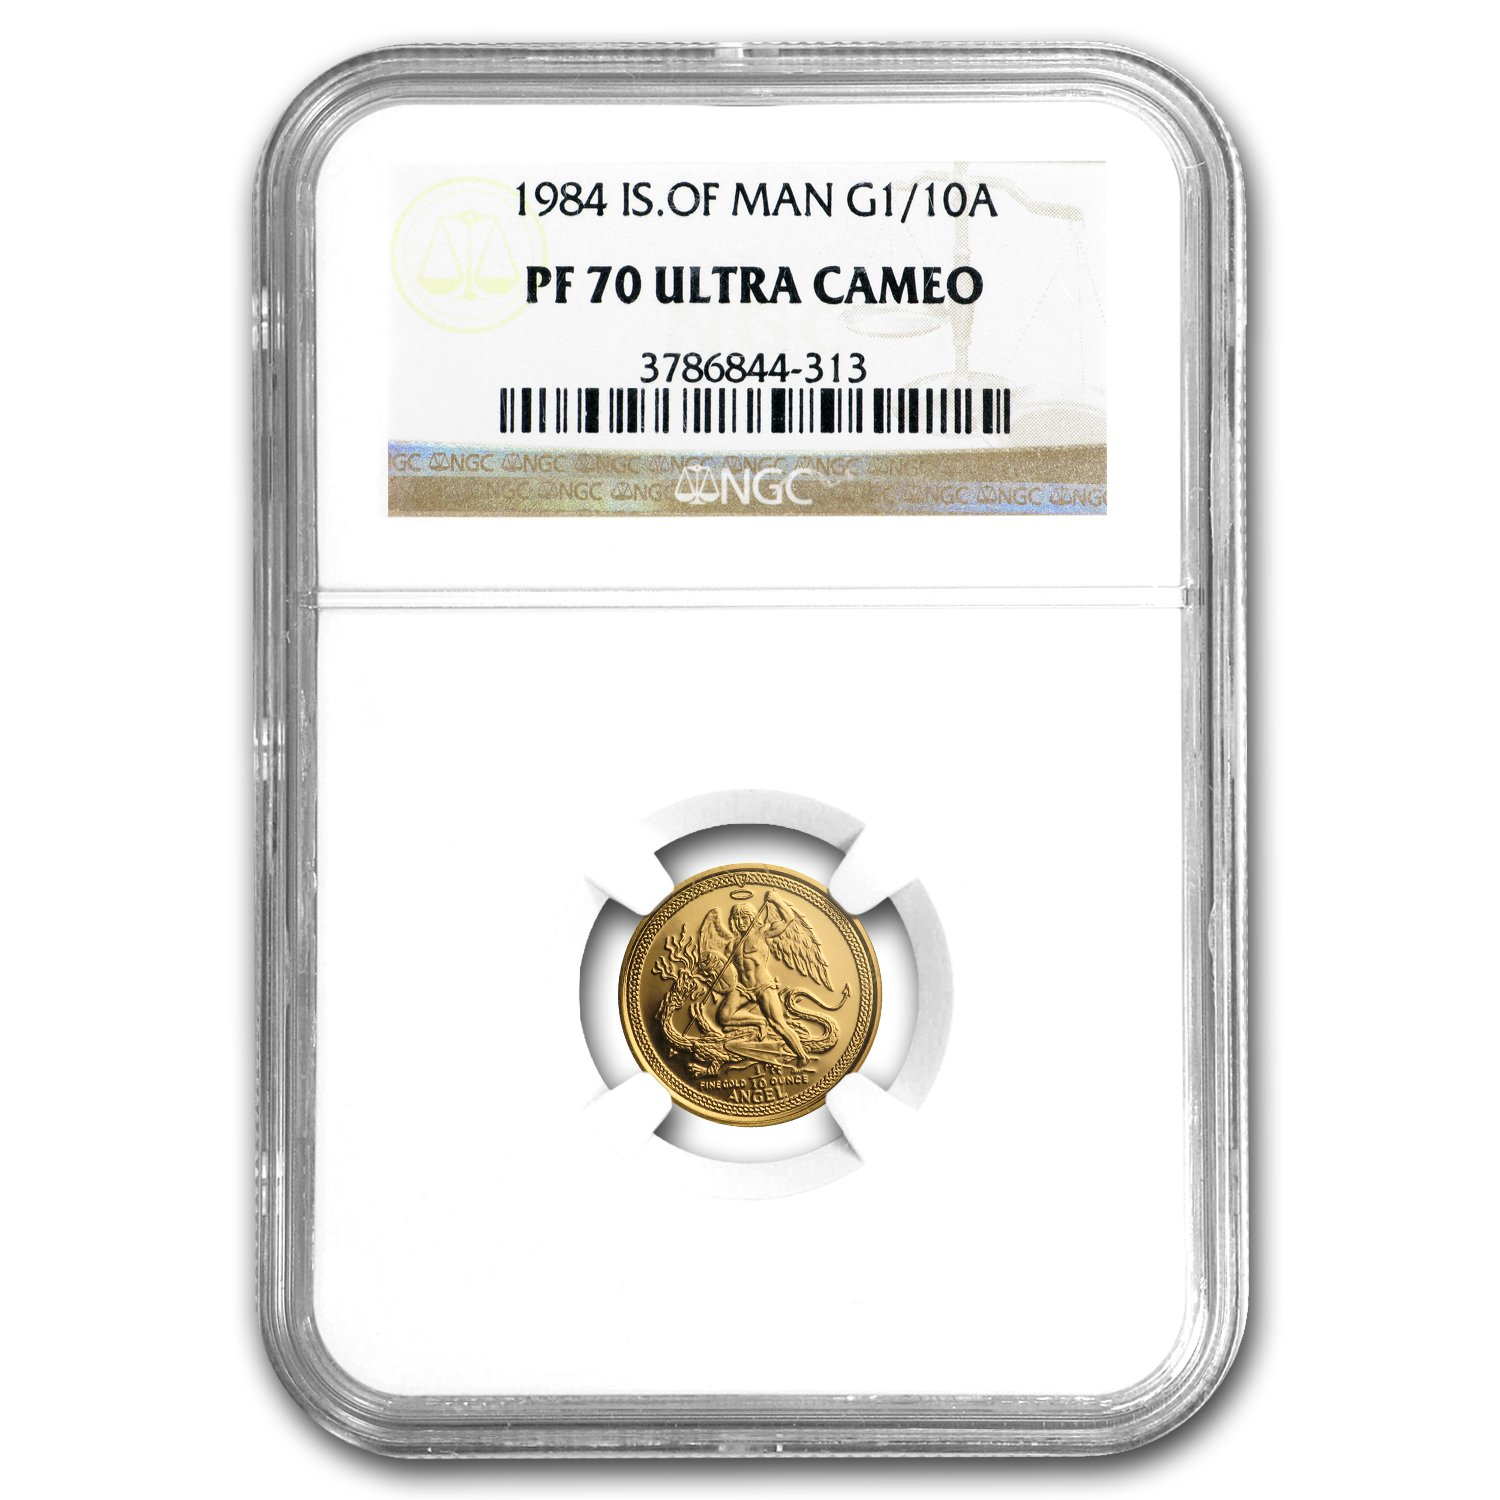 1984 Im Isle Of Man 110 Oz Gold Proof Angel Pf 70 Ngc Gold Pf 70